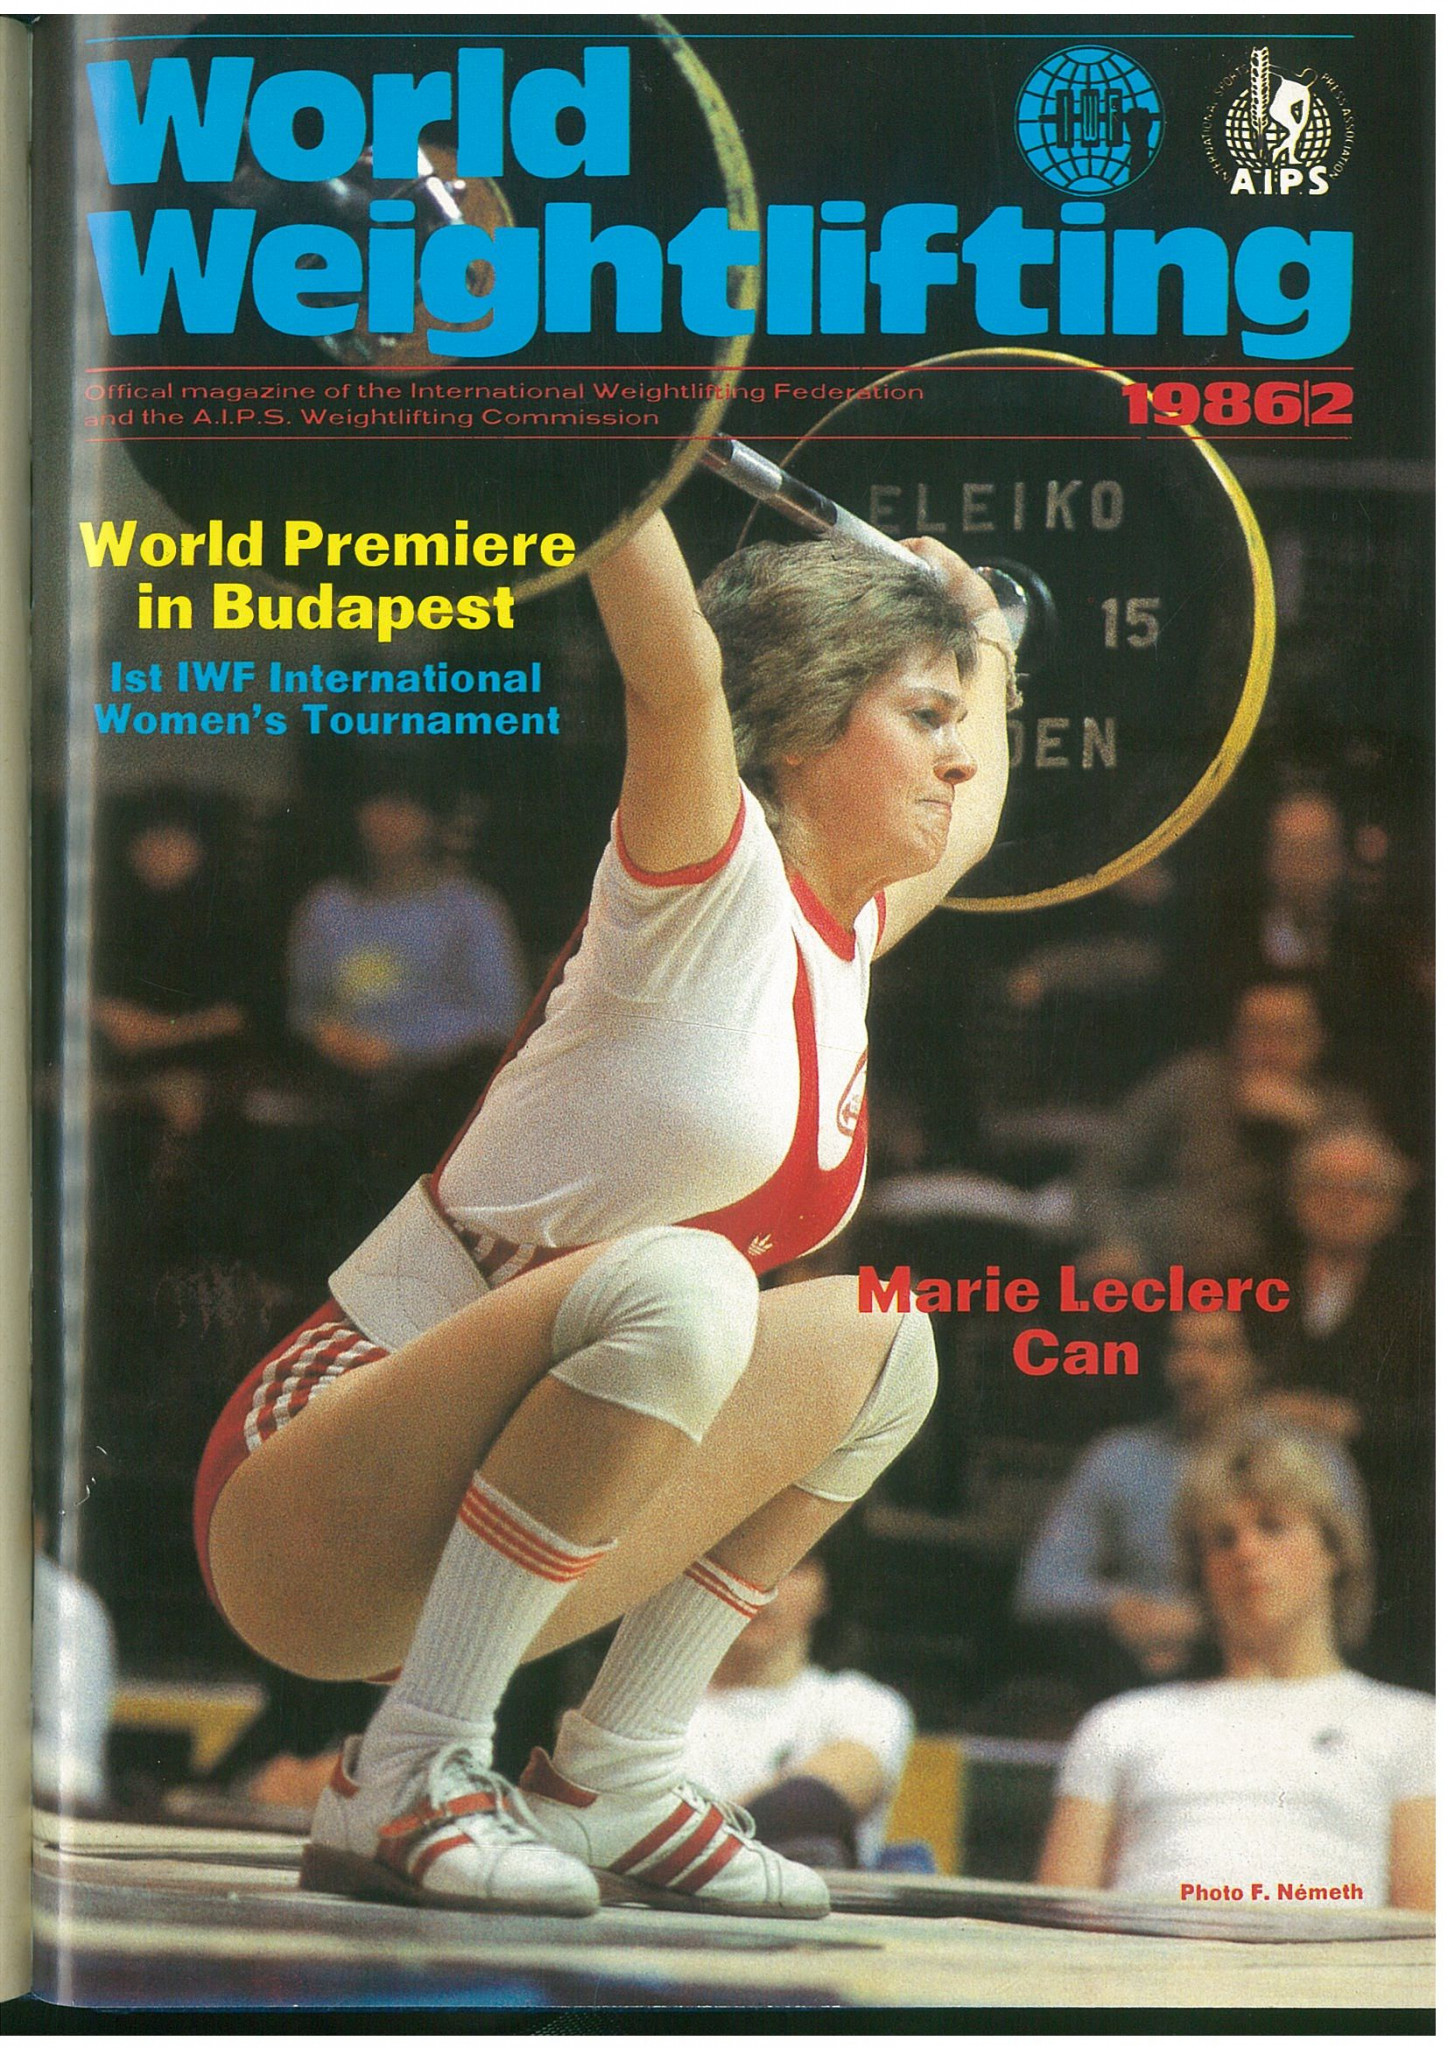 Marie Leclerc of Canada was the first woman to feature on the cover of World Weightlifting Magazine ©IWF